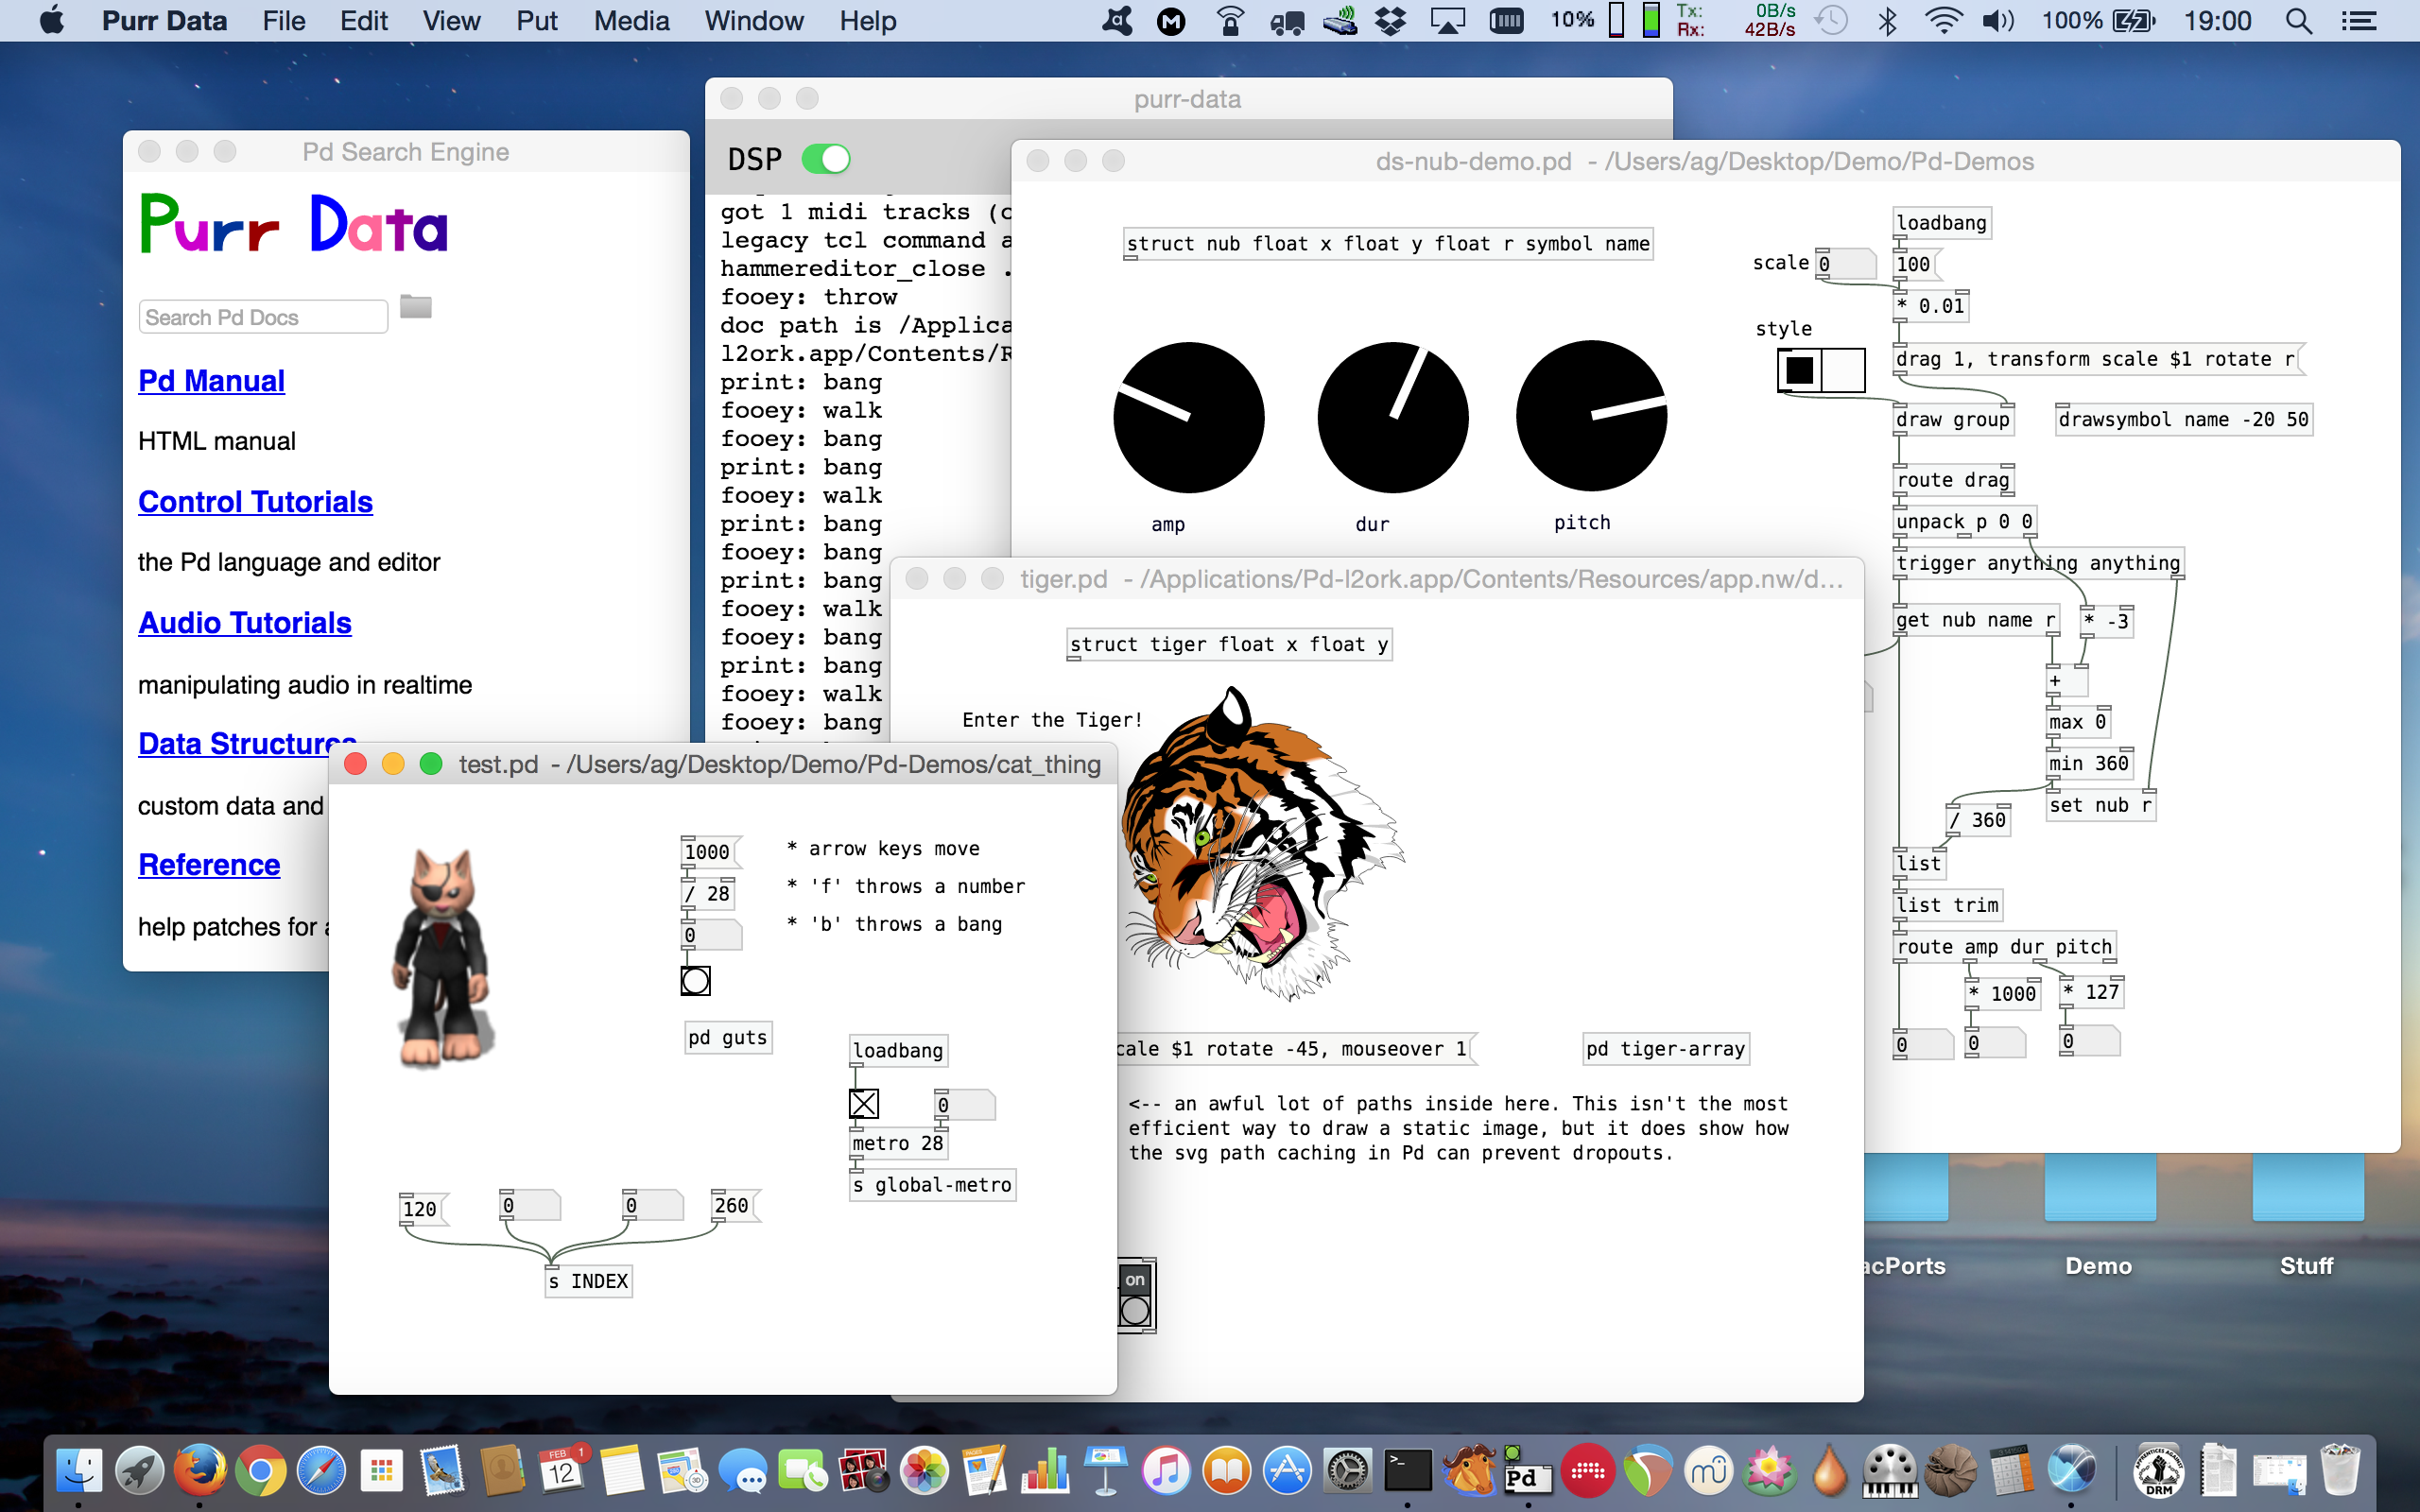 Purr Data running on macOS.